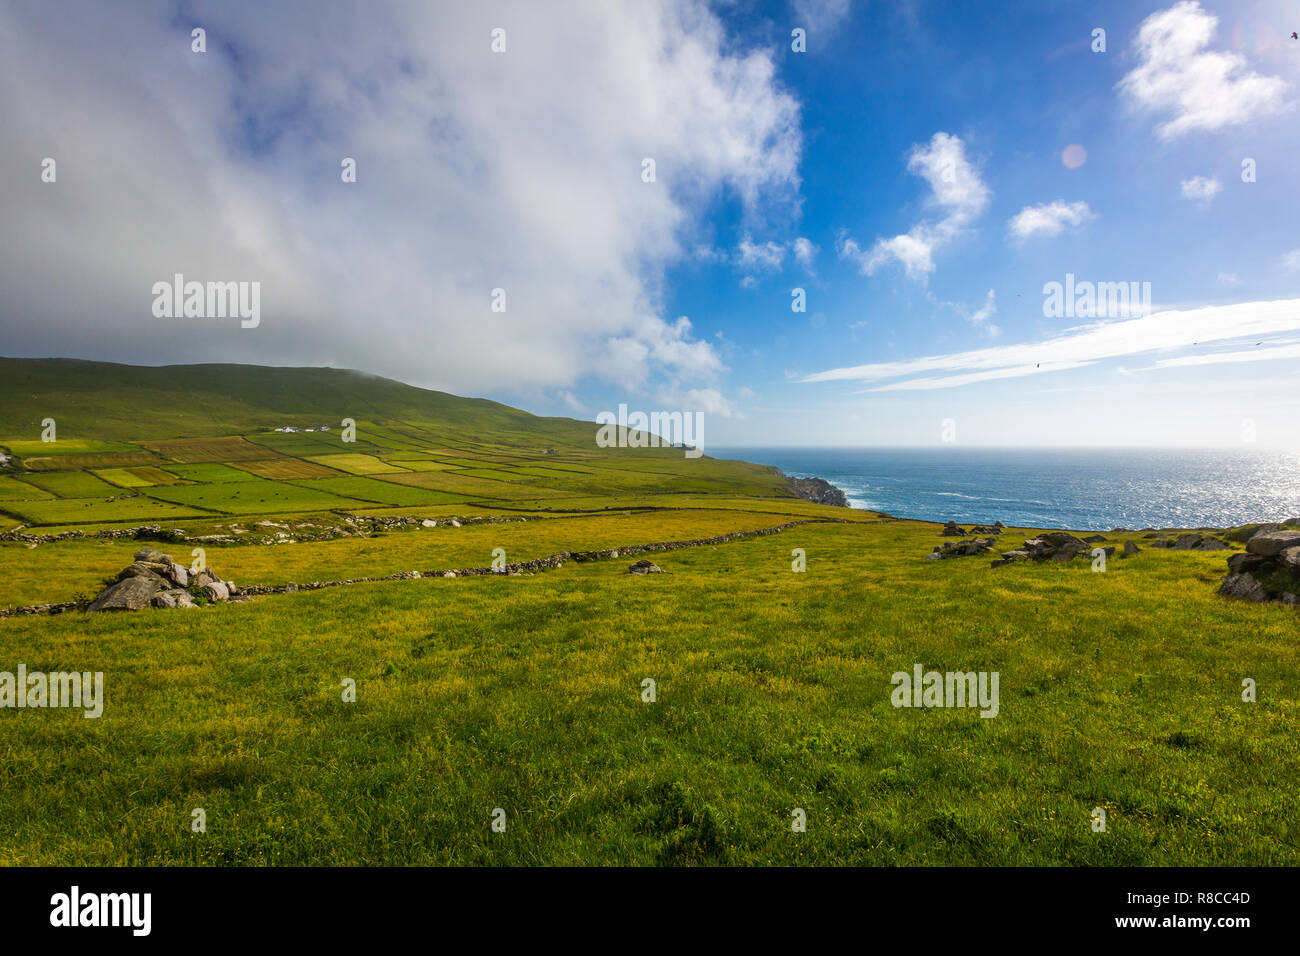 stonewalls on Mizen Peninsula, West Cork - Stock Image